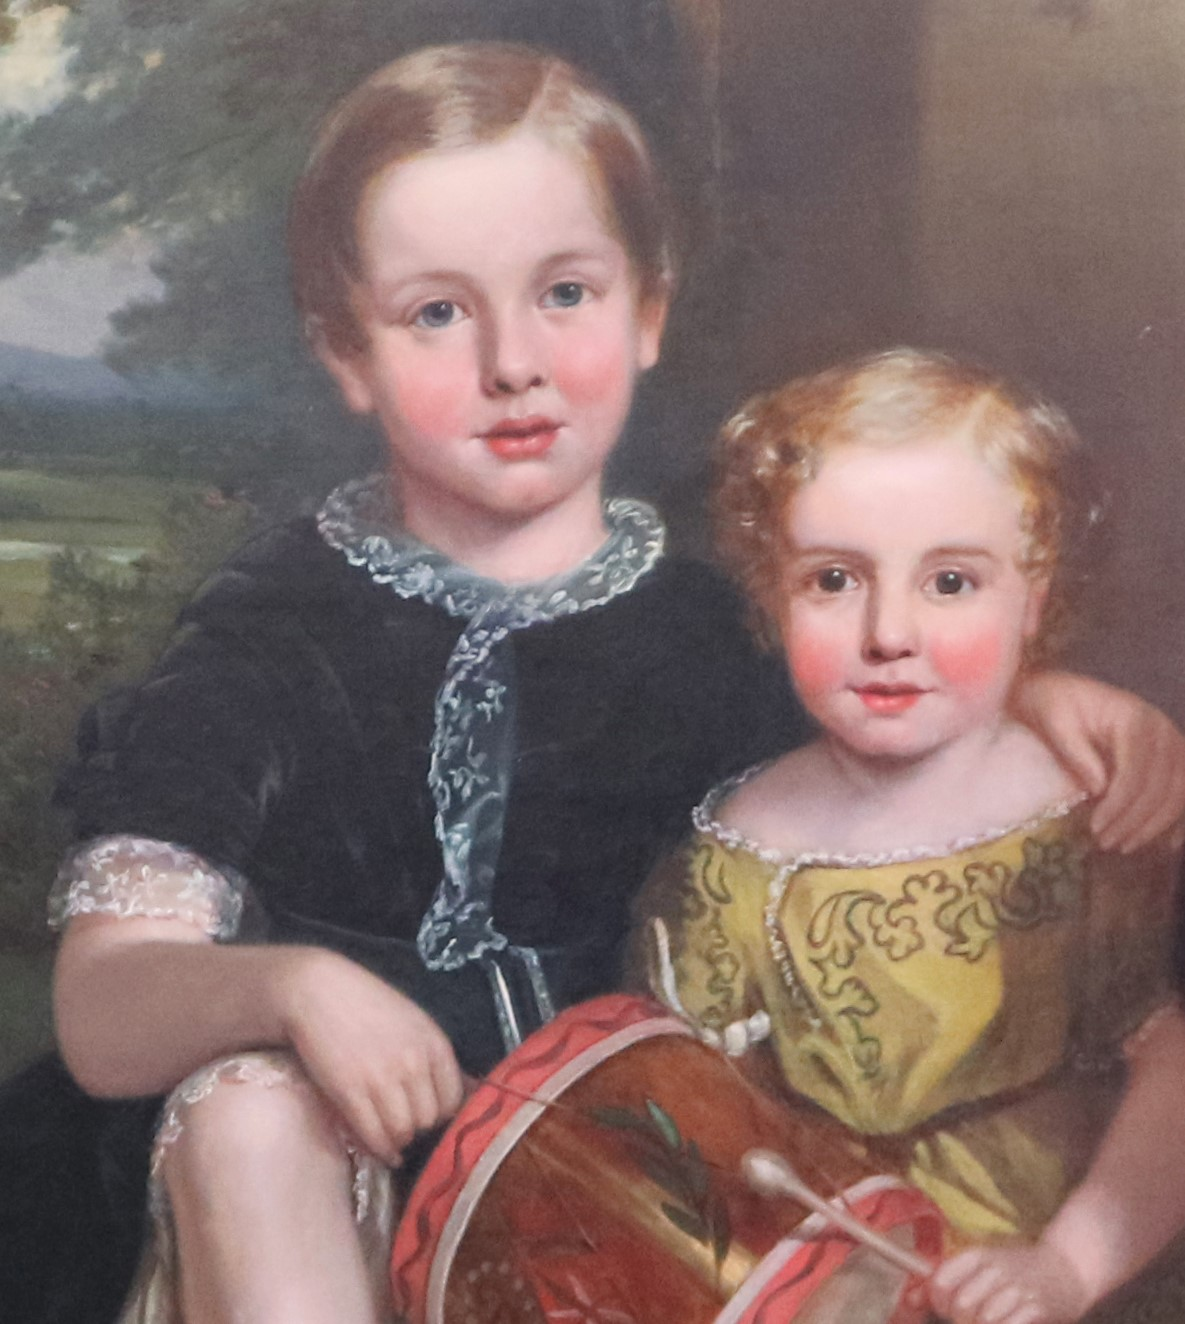 Firmstone children depicted in the family portrait shown attributed to Harry Spurrier Parkman